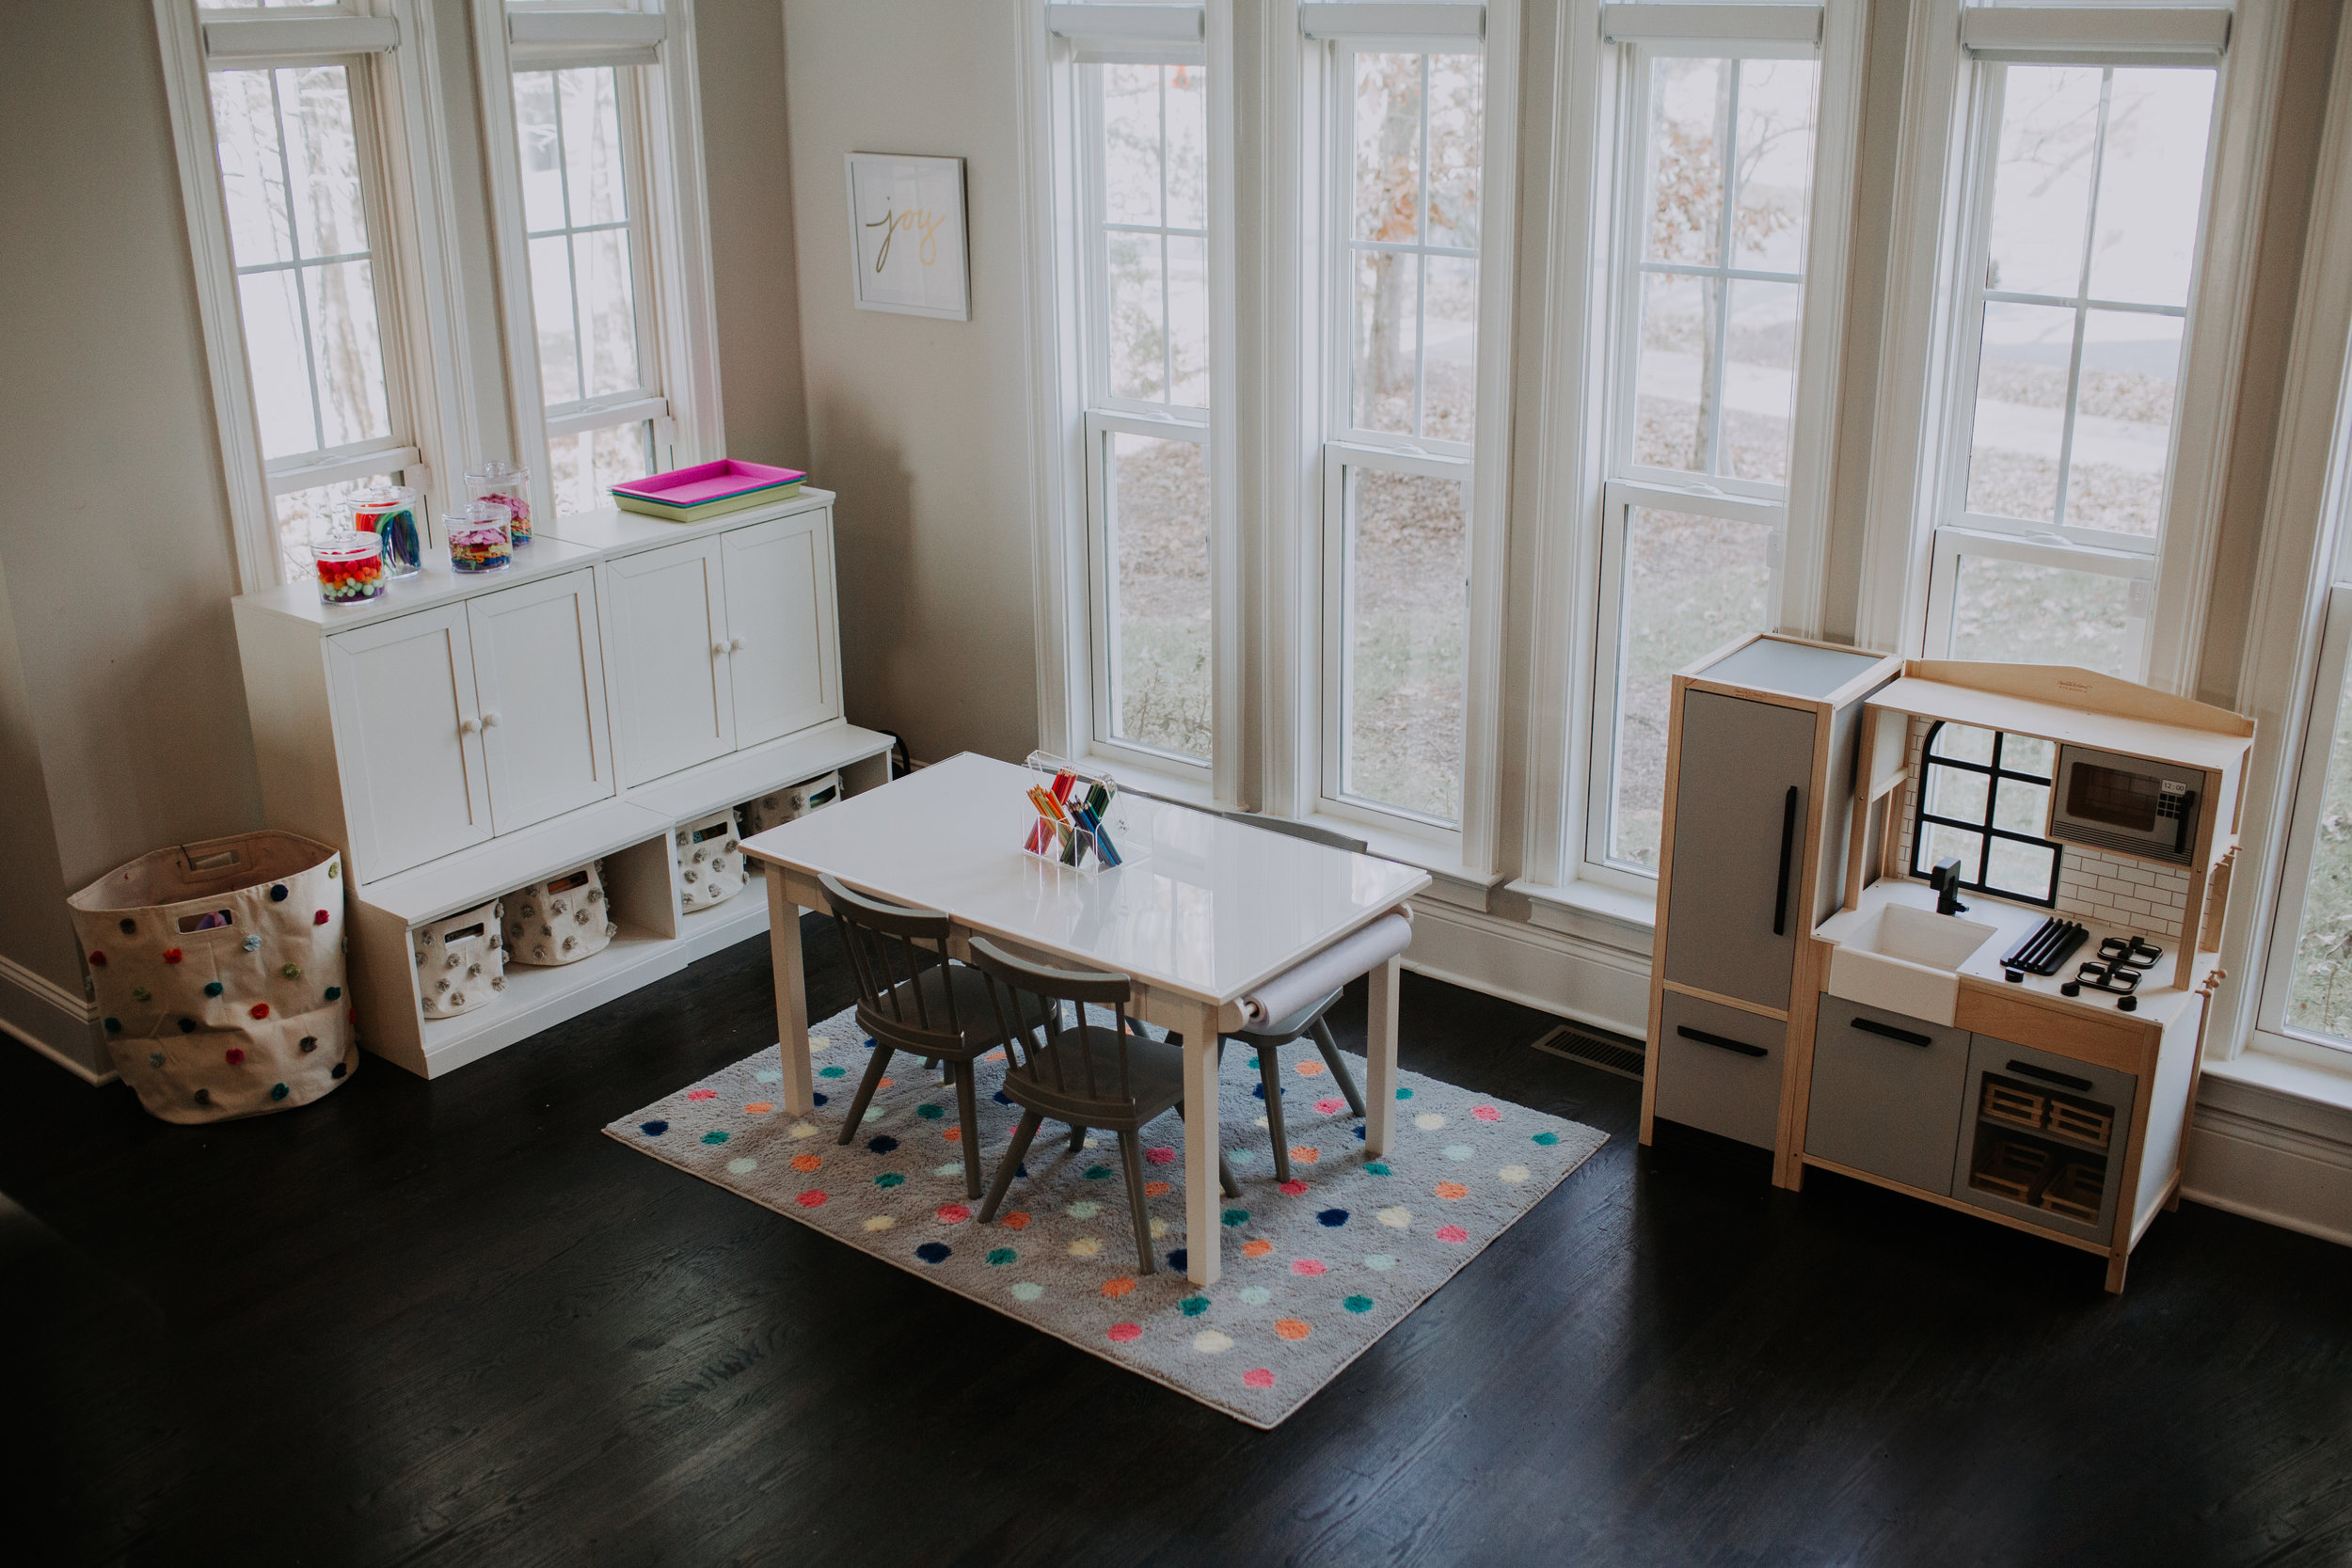 I mean!!!! GIVE ME ALL THE HEART EYES!! I also wanted a modern play kitchen in this space for the kids! I think it's a great toy to add in a small space for kids. They love to imagine and cook for me.